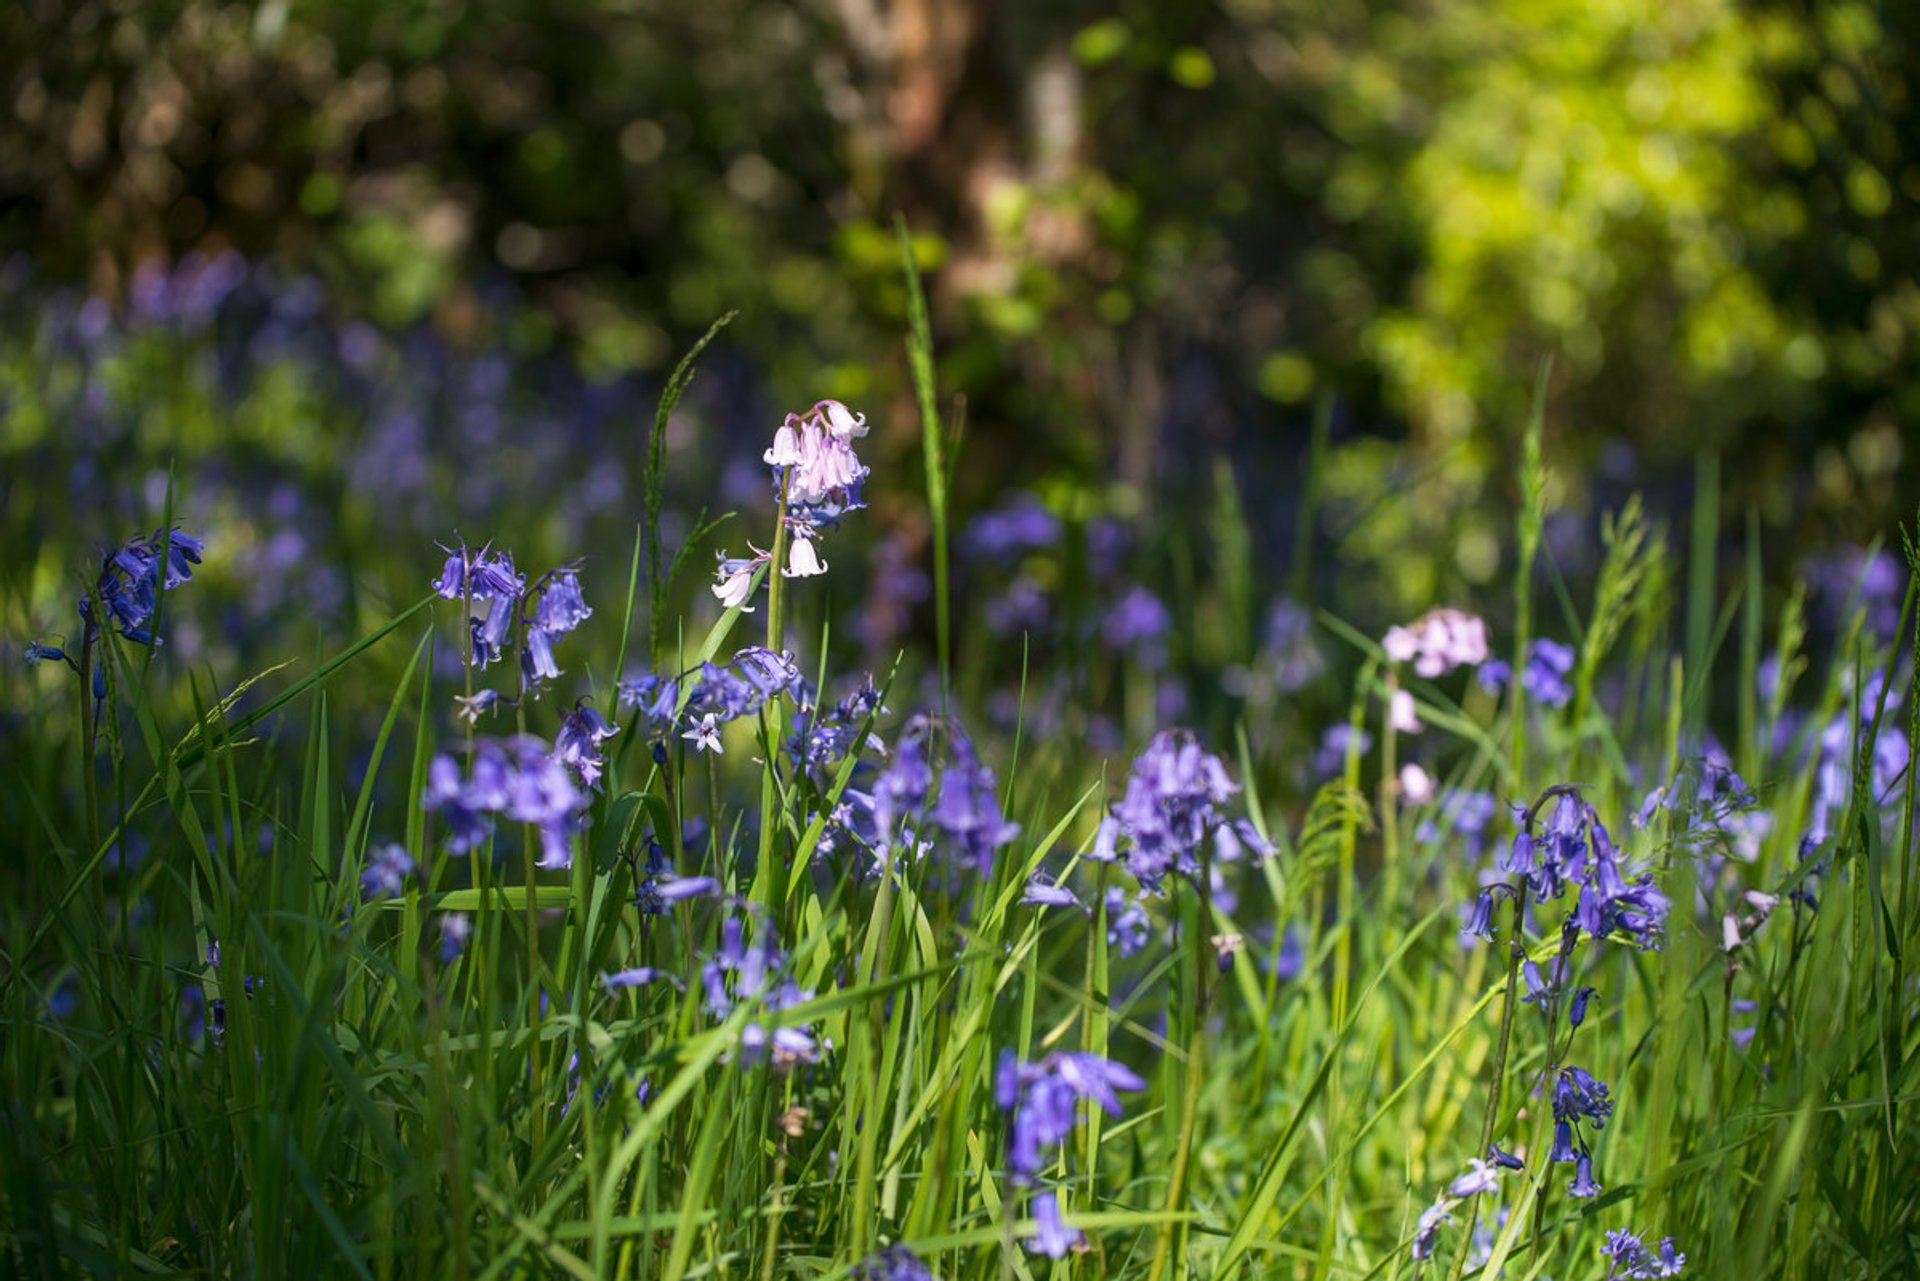 Best time for Blooming Bluebells in Scotland 2020